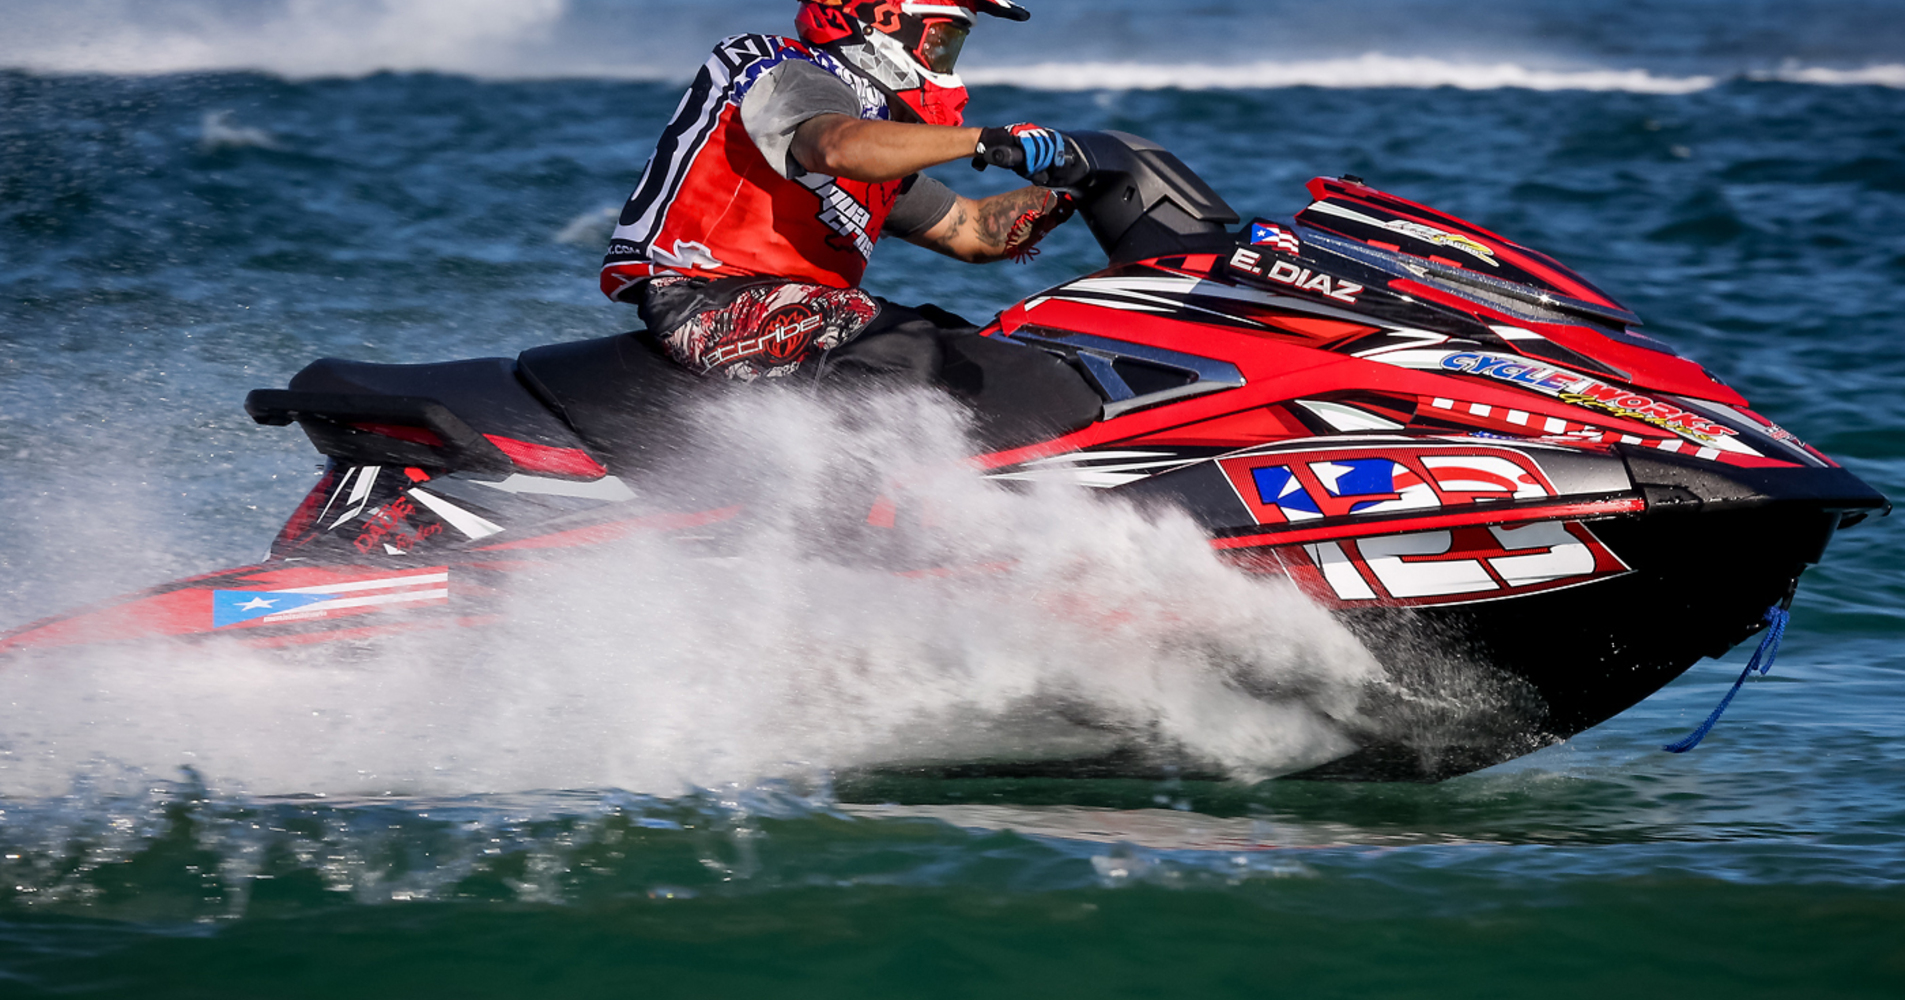 Eric Diaz, reigning 200 class champ, is looking to double up in Key West